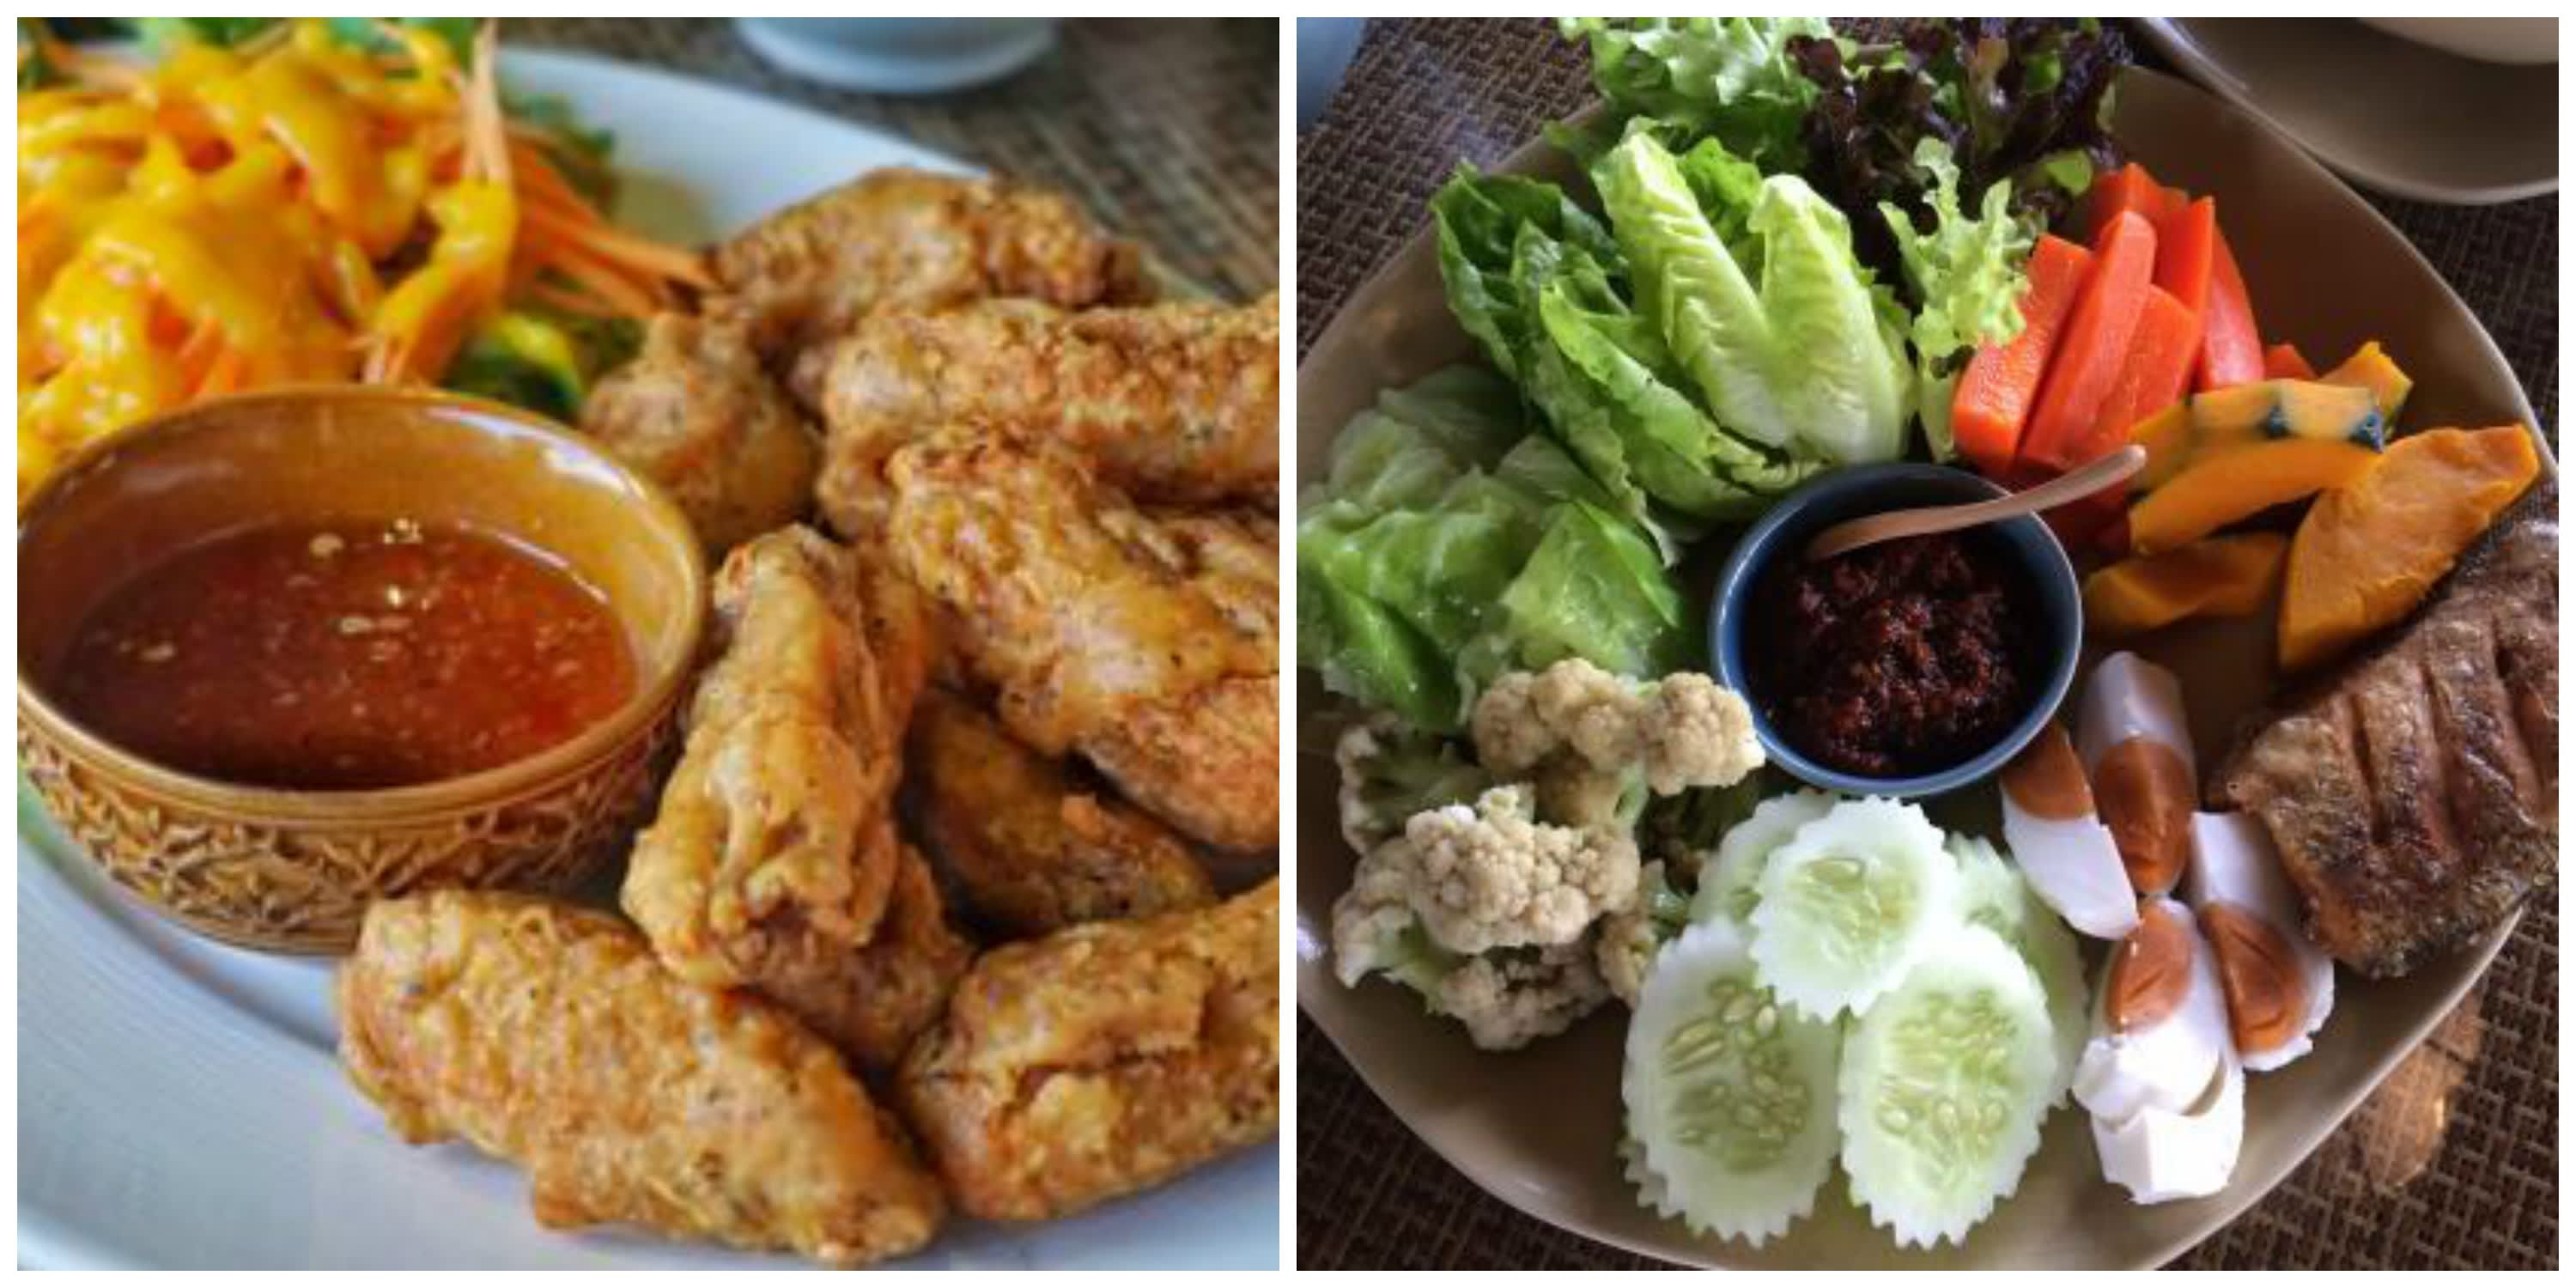 How-to-explore-Chiang-Mai-under-US$35-a-day-ban-mon-muan-food